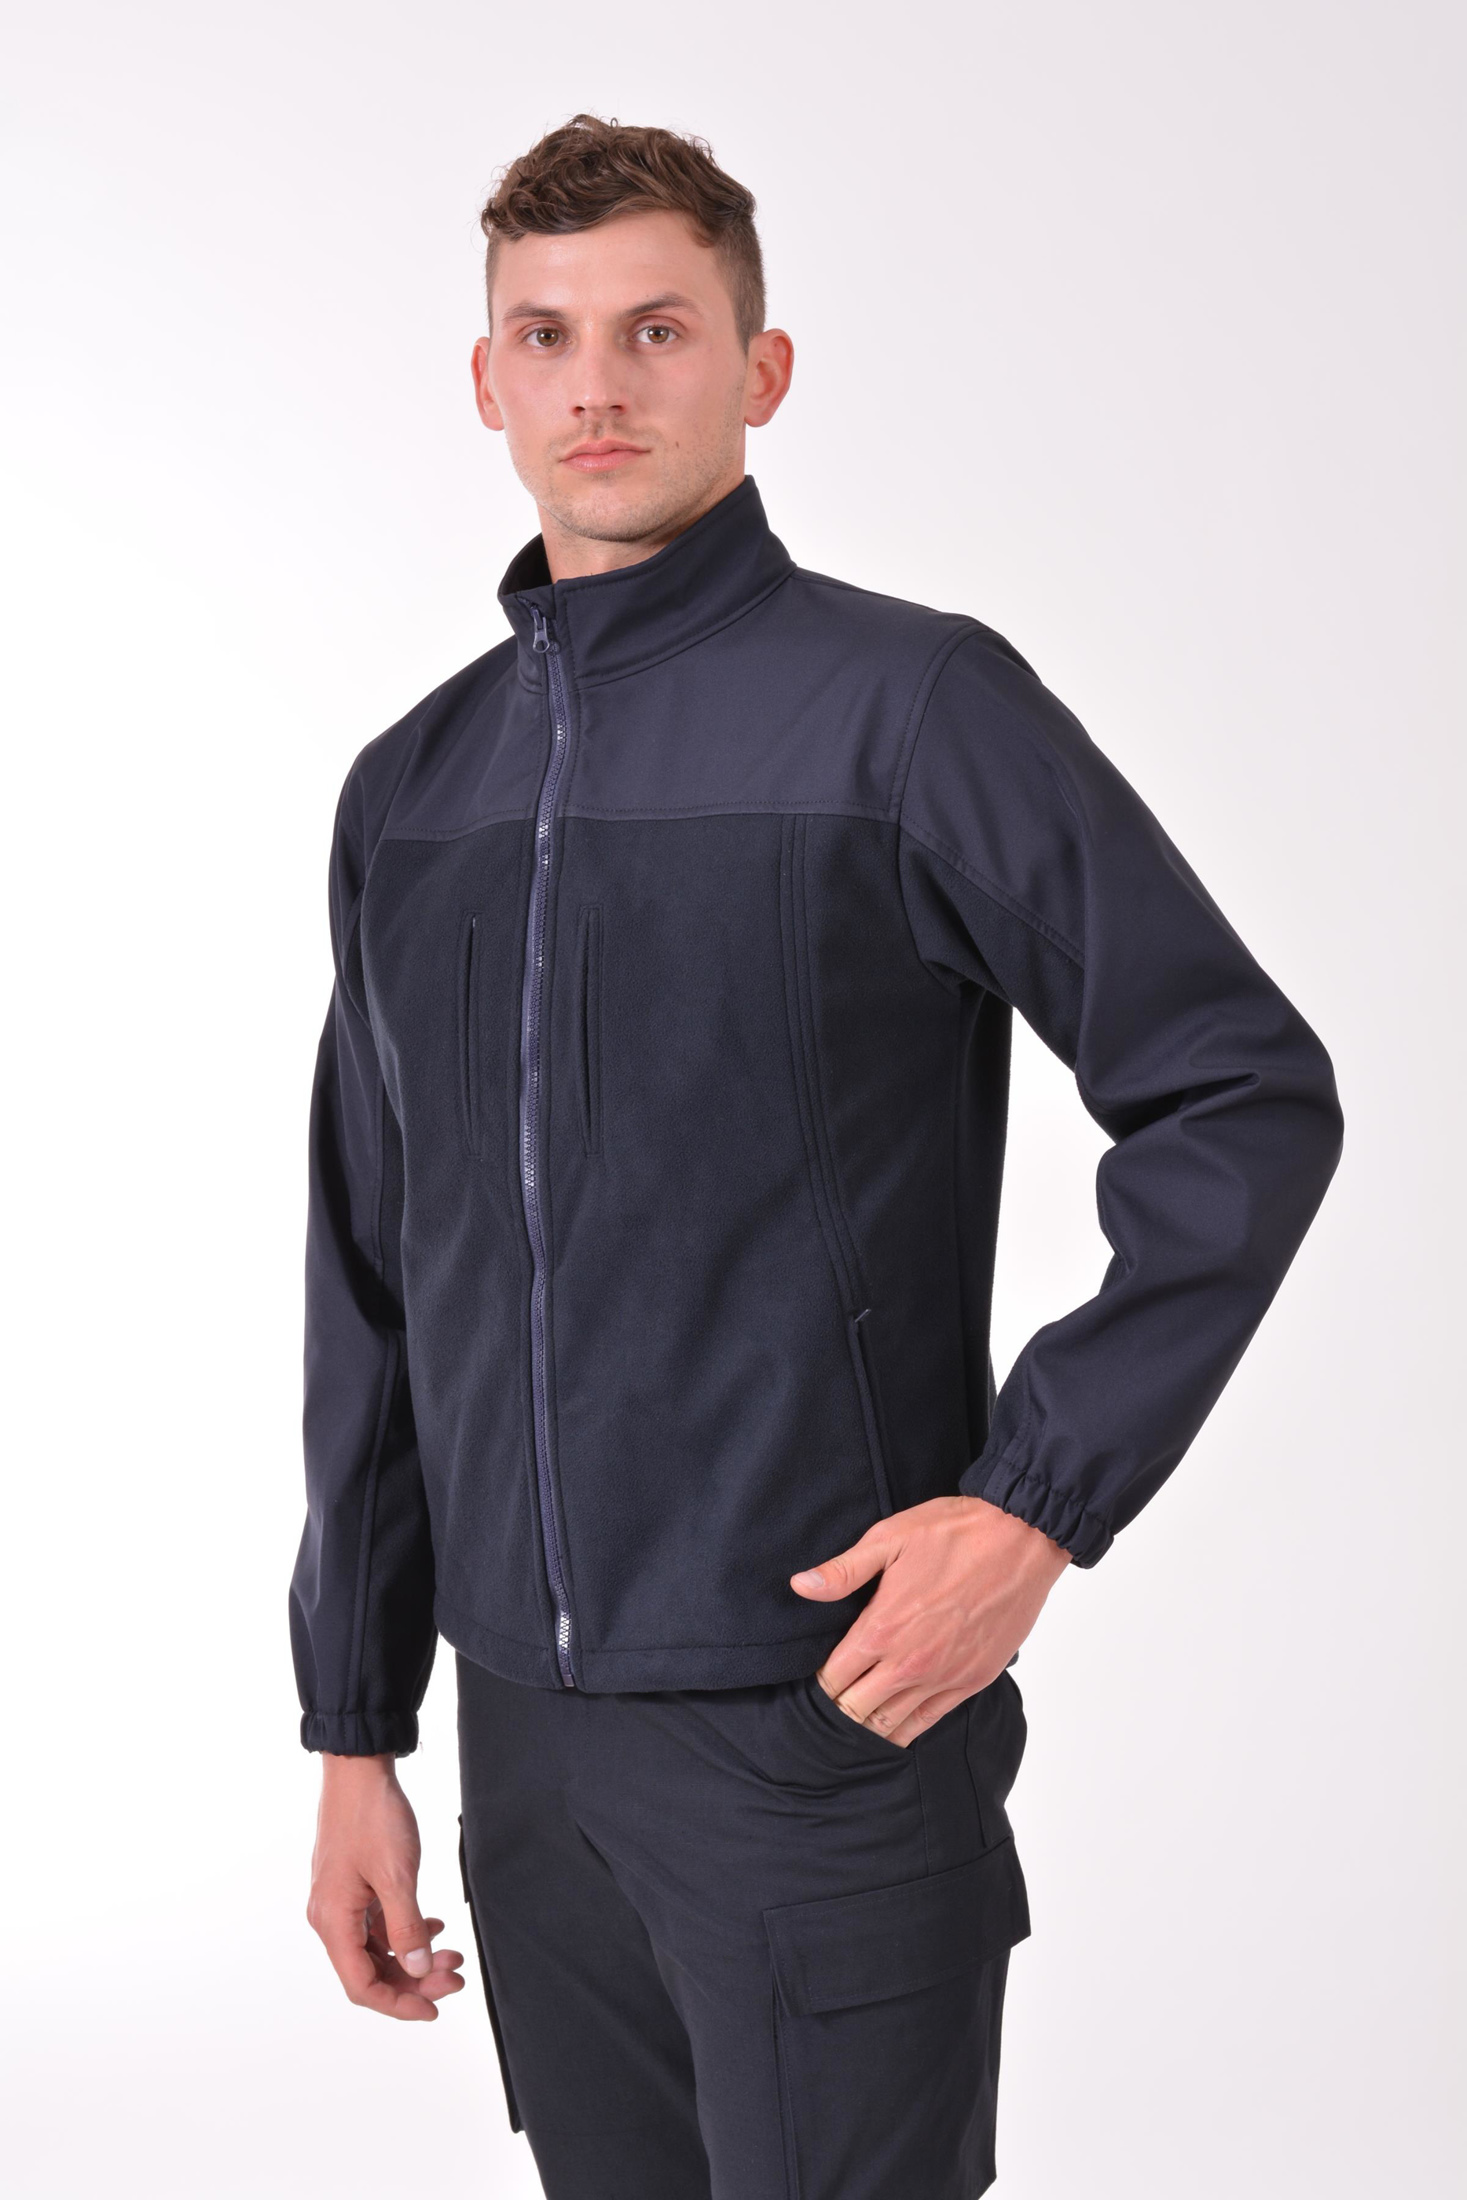 muška jakna soft shell windstopper, vodootporna, vjetrootporna. men's jacket soft shell windstopper, water repellent, windproof